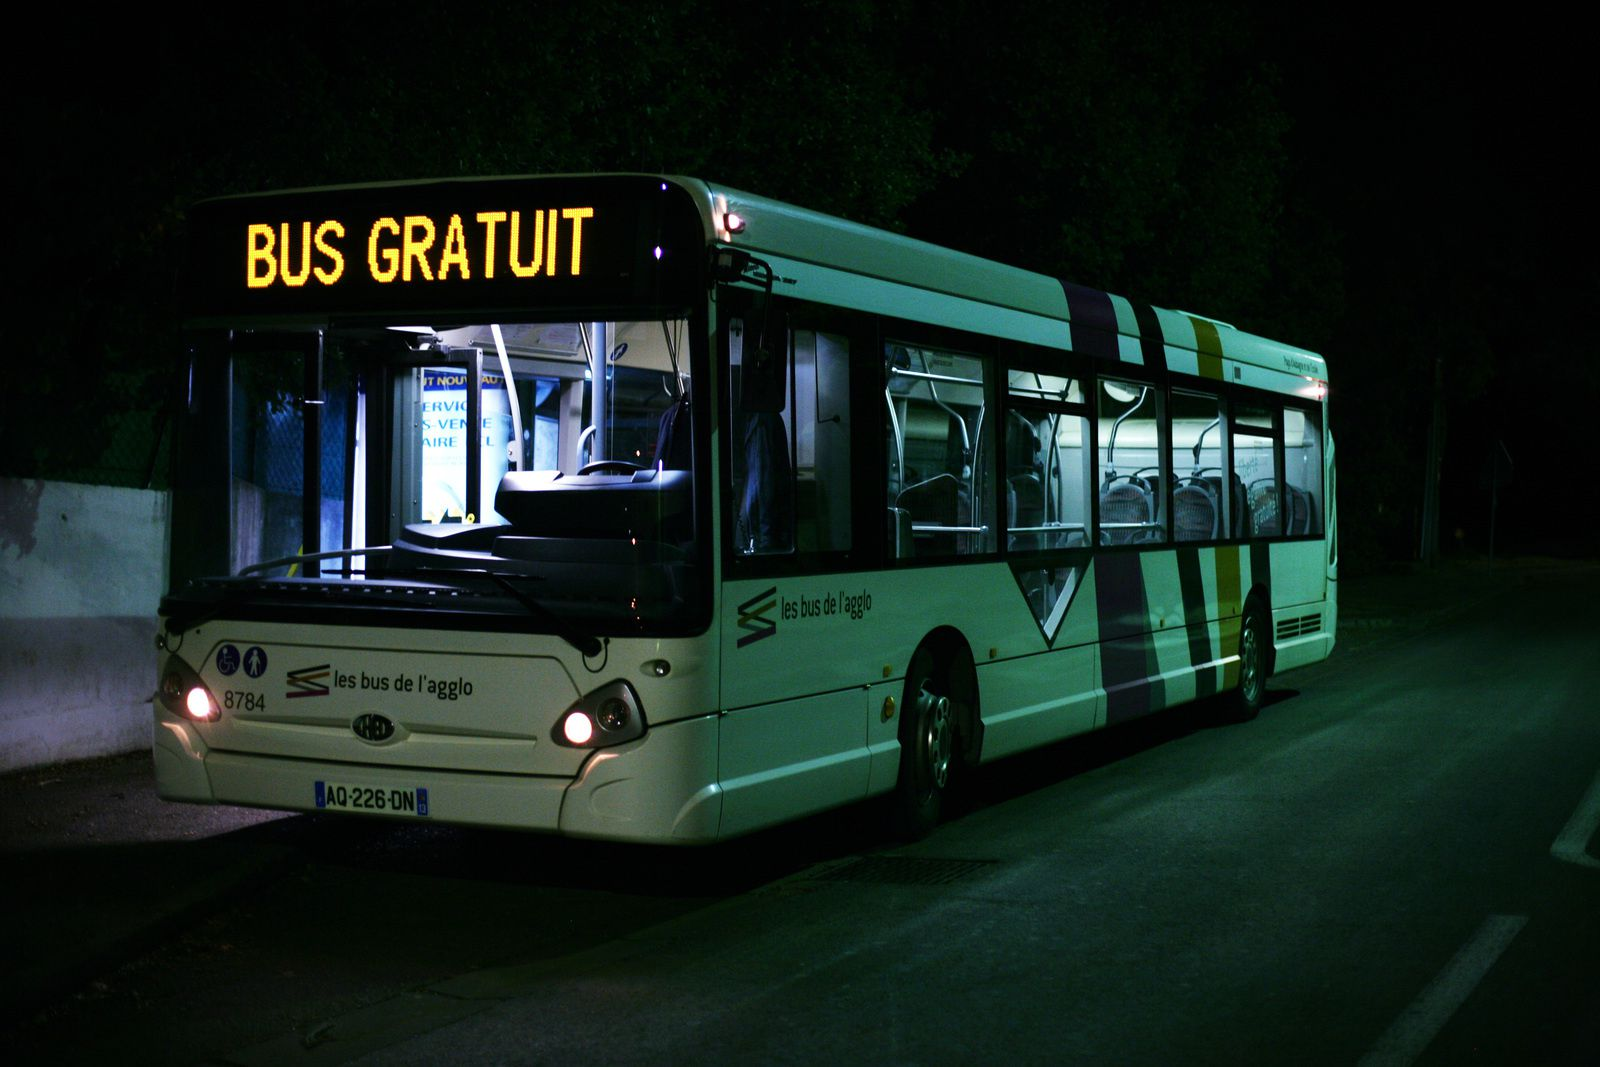 Bus gratuit à Aubagne (France). Photo : Audrey Cerdan / Rue89